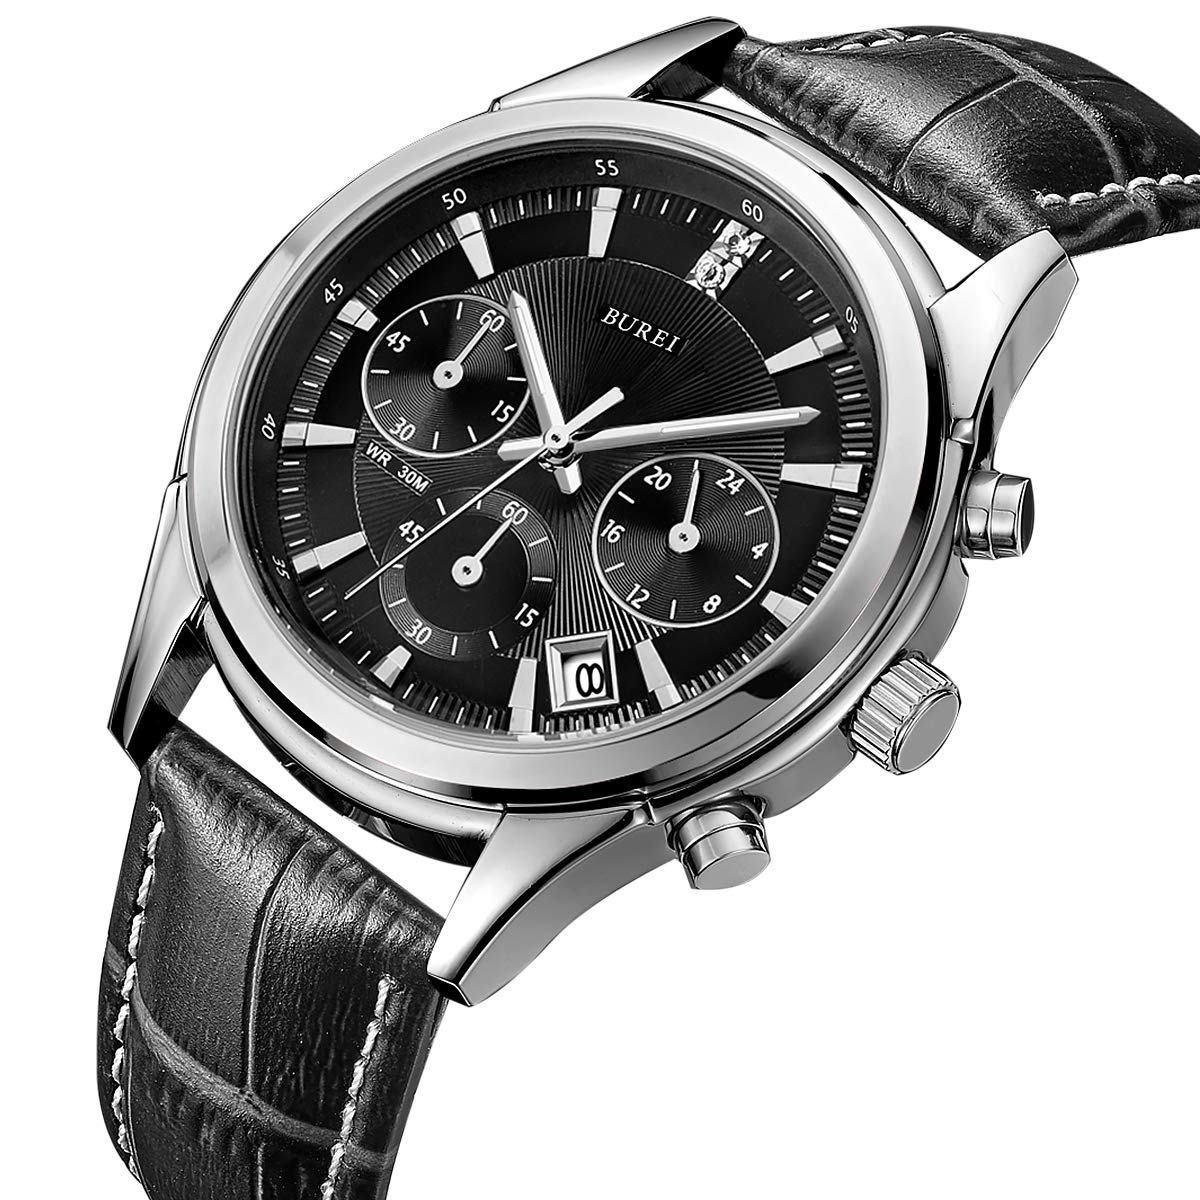 BUREI Mens Business Casual Elegant Chronograph Sports Watch with Genuine Leather Strap Black-Leather Strap